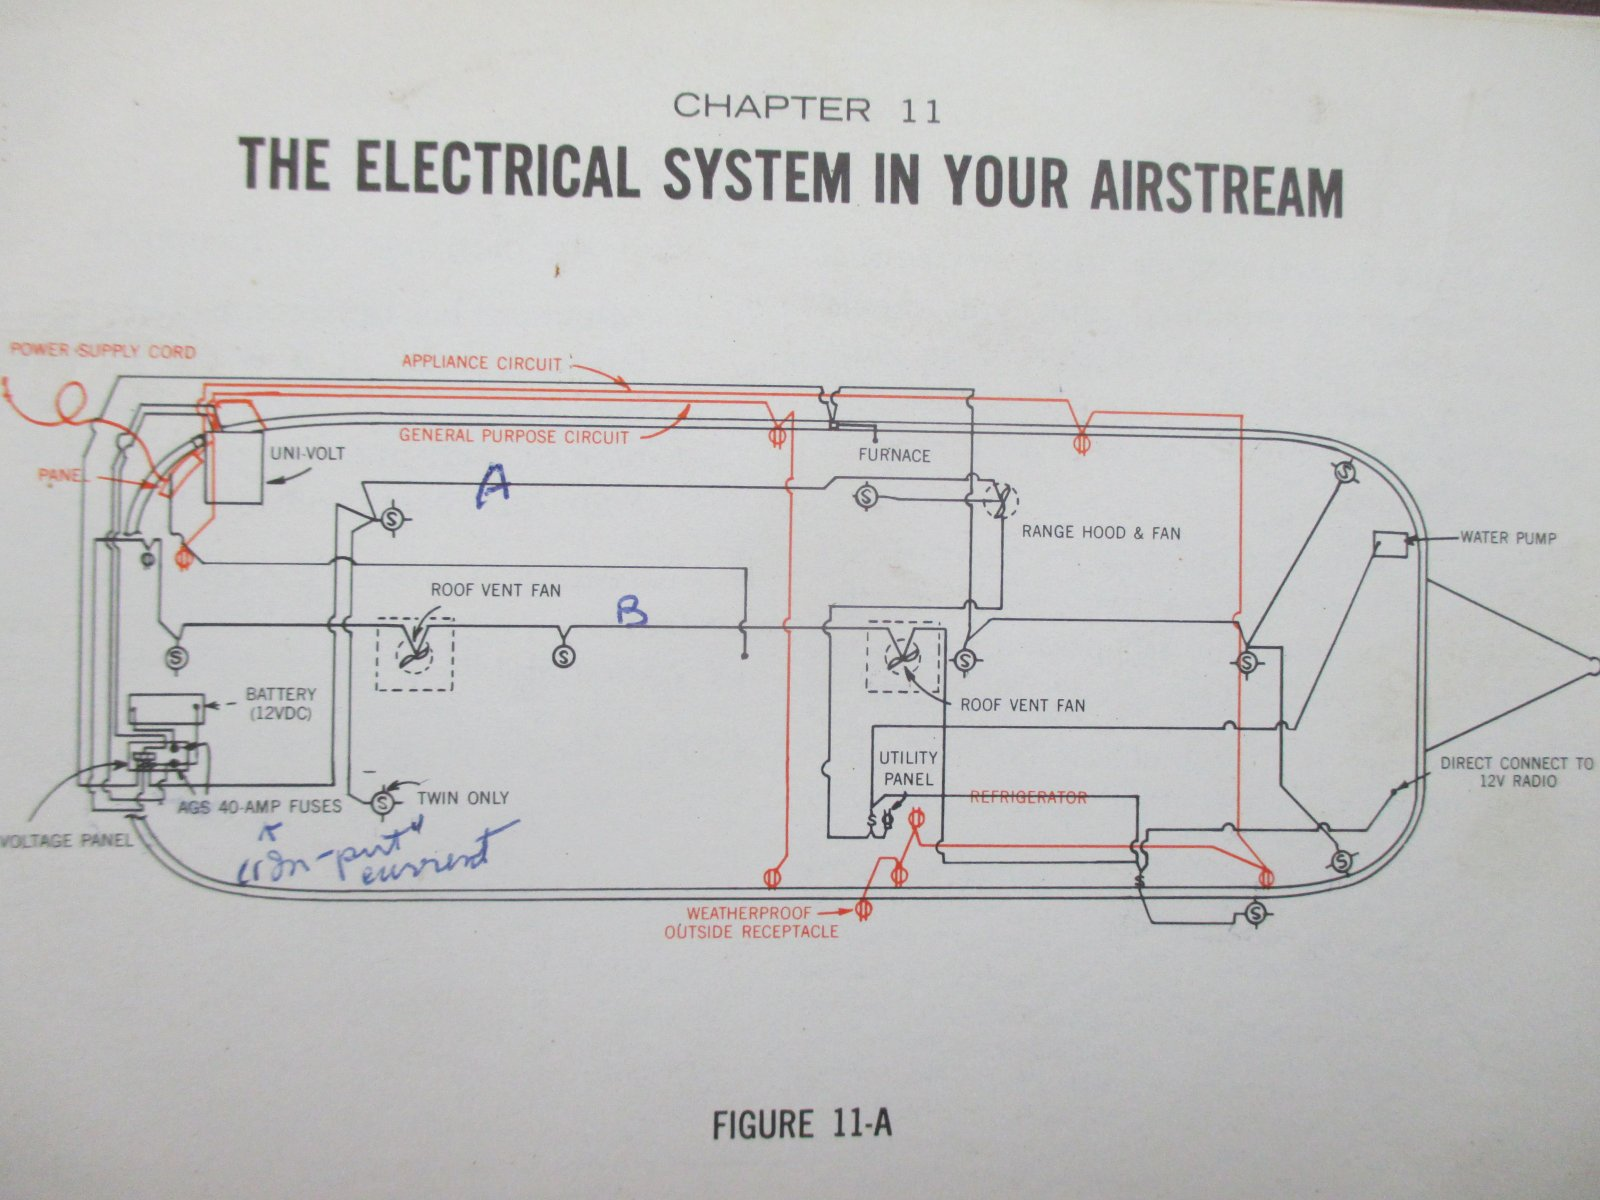 12 volt wiring diagram for 1966 airstream gallery diagram writing sample  ideas and guide 1957 chevrolet bel air wiring diagram 1954 chevy bel air  wiring ...